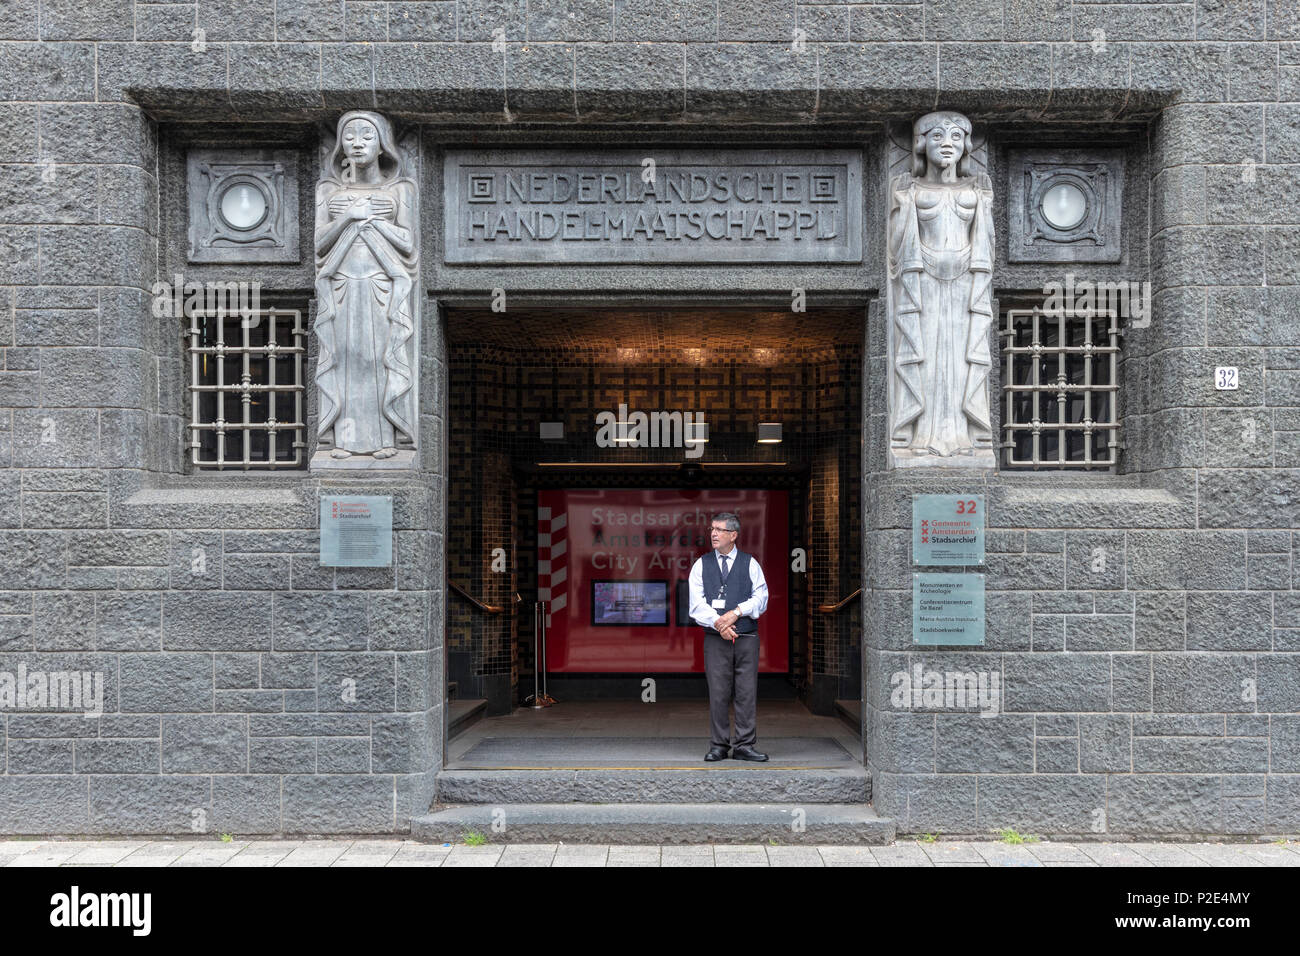 Security guard at doorway of former Netherlands Trading Society, now Amsterdam City Archives - Stock Image